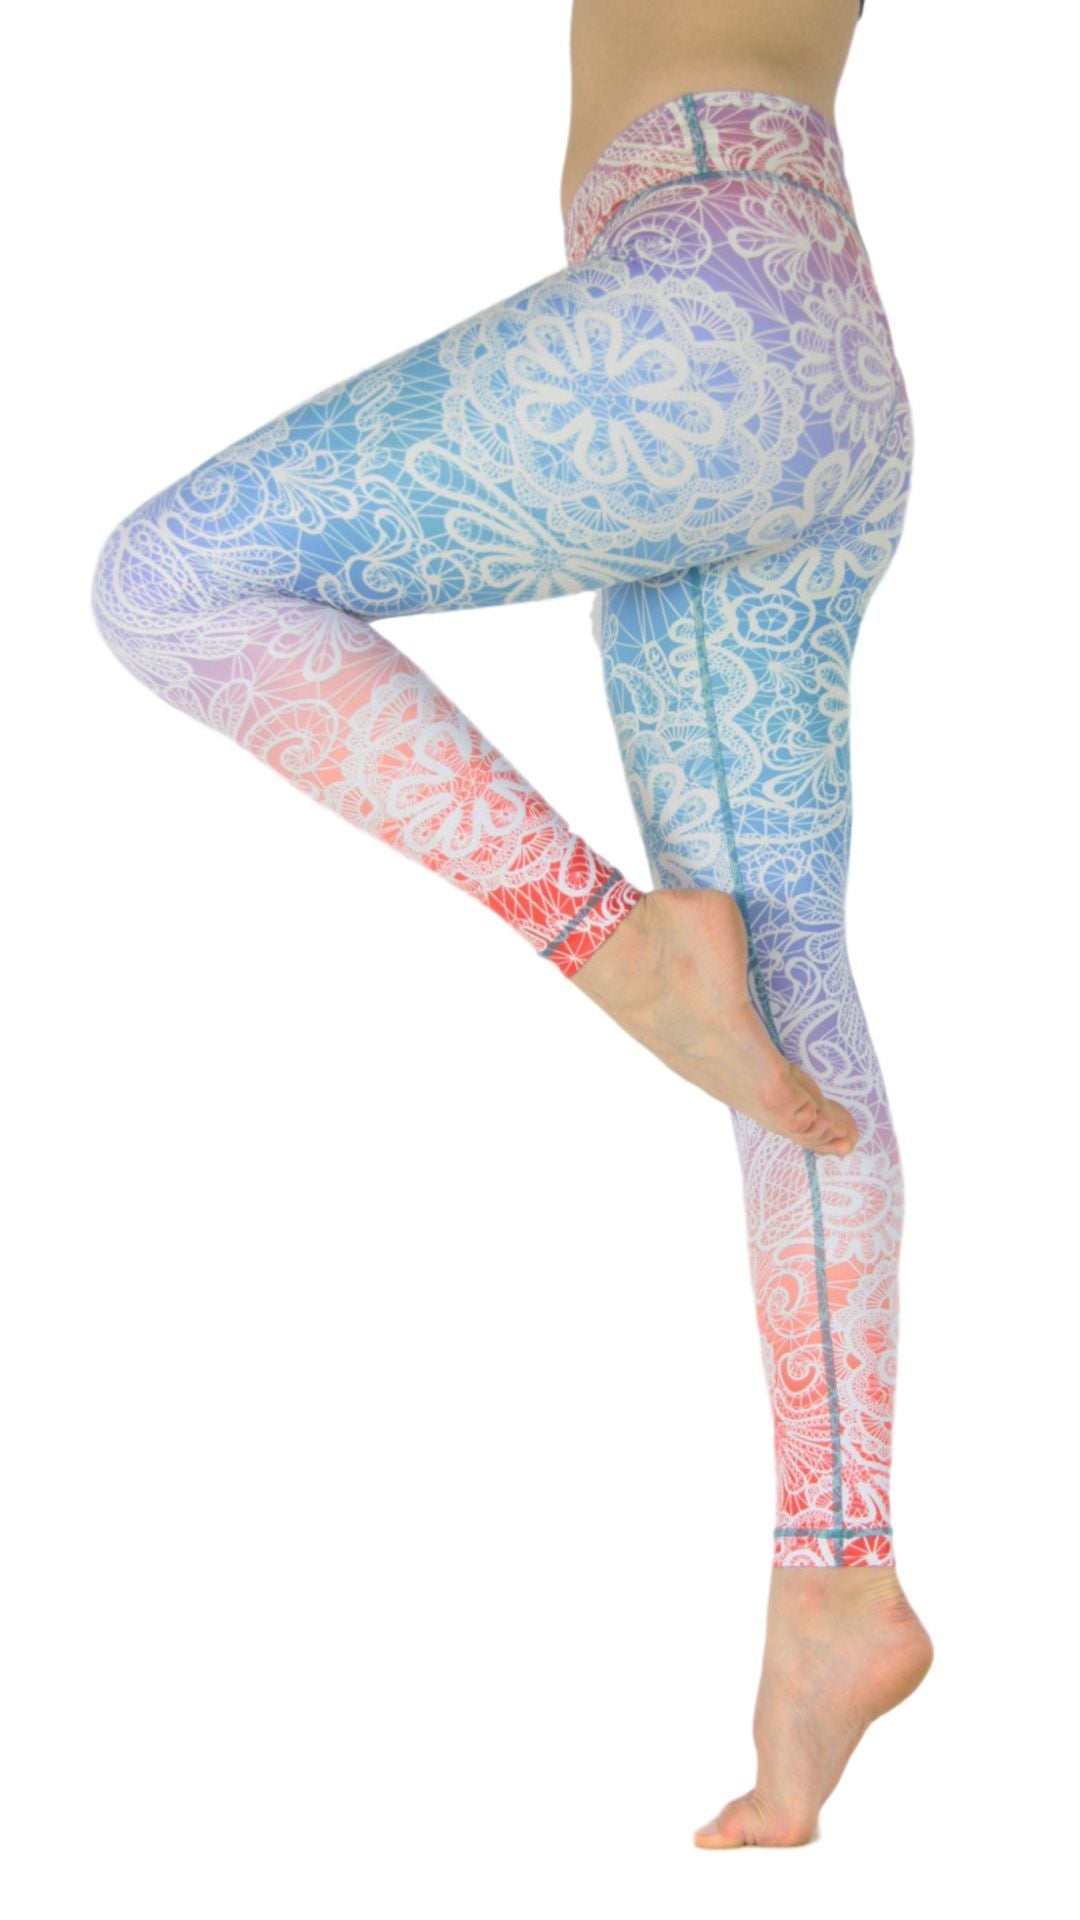 Sweet Summer Child by Niyama - High Quality, Yoga Legging for Movement Artists.